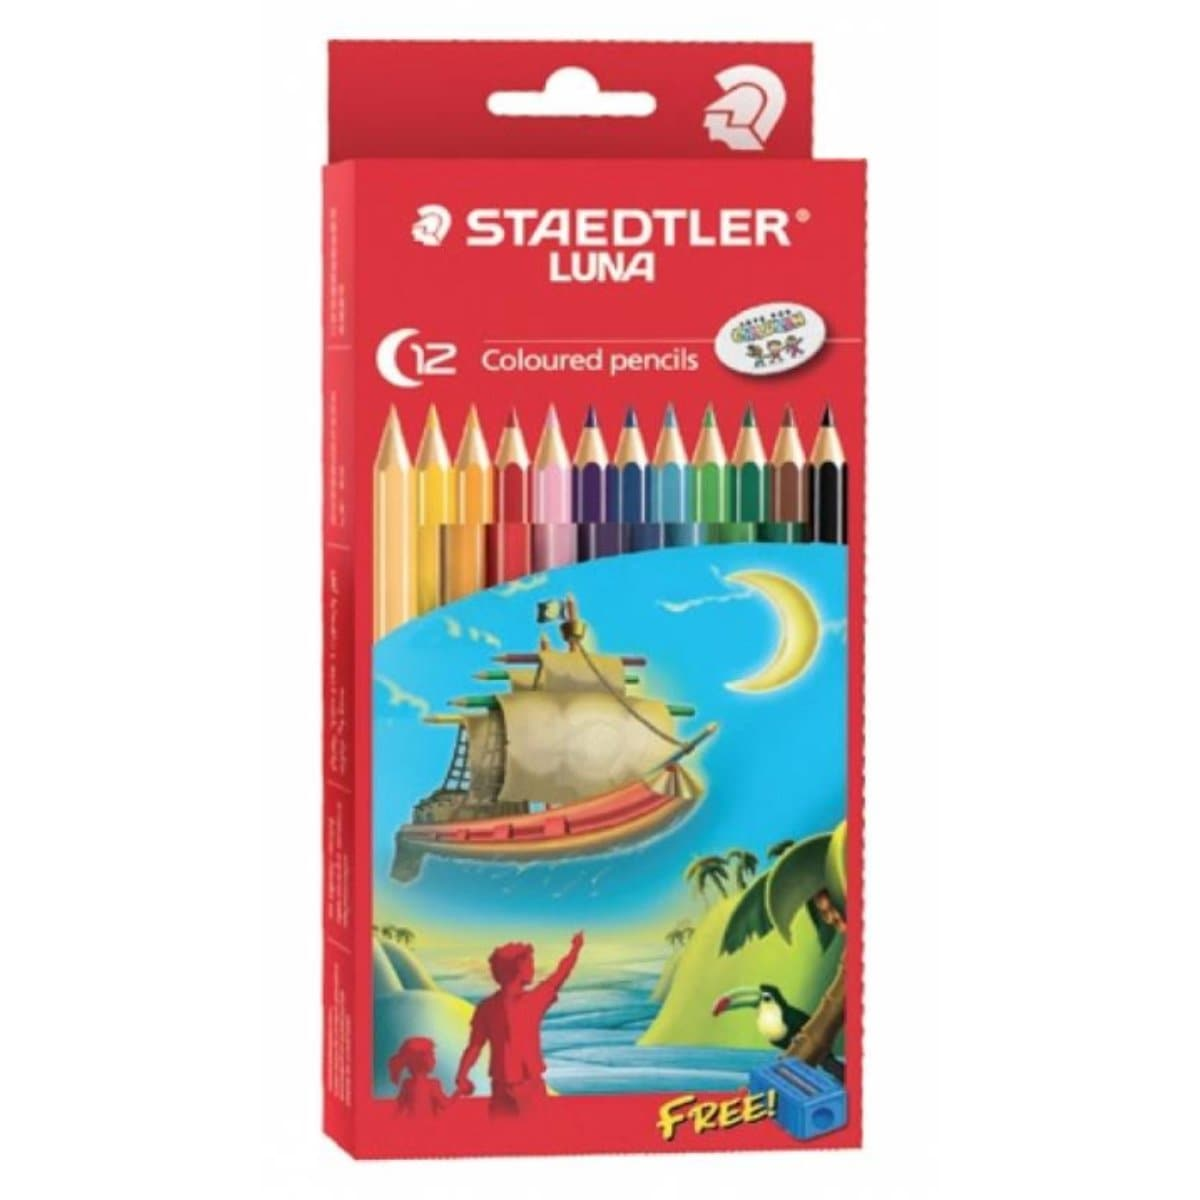 Staedtler Luna Colored Pencils, 12/pack